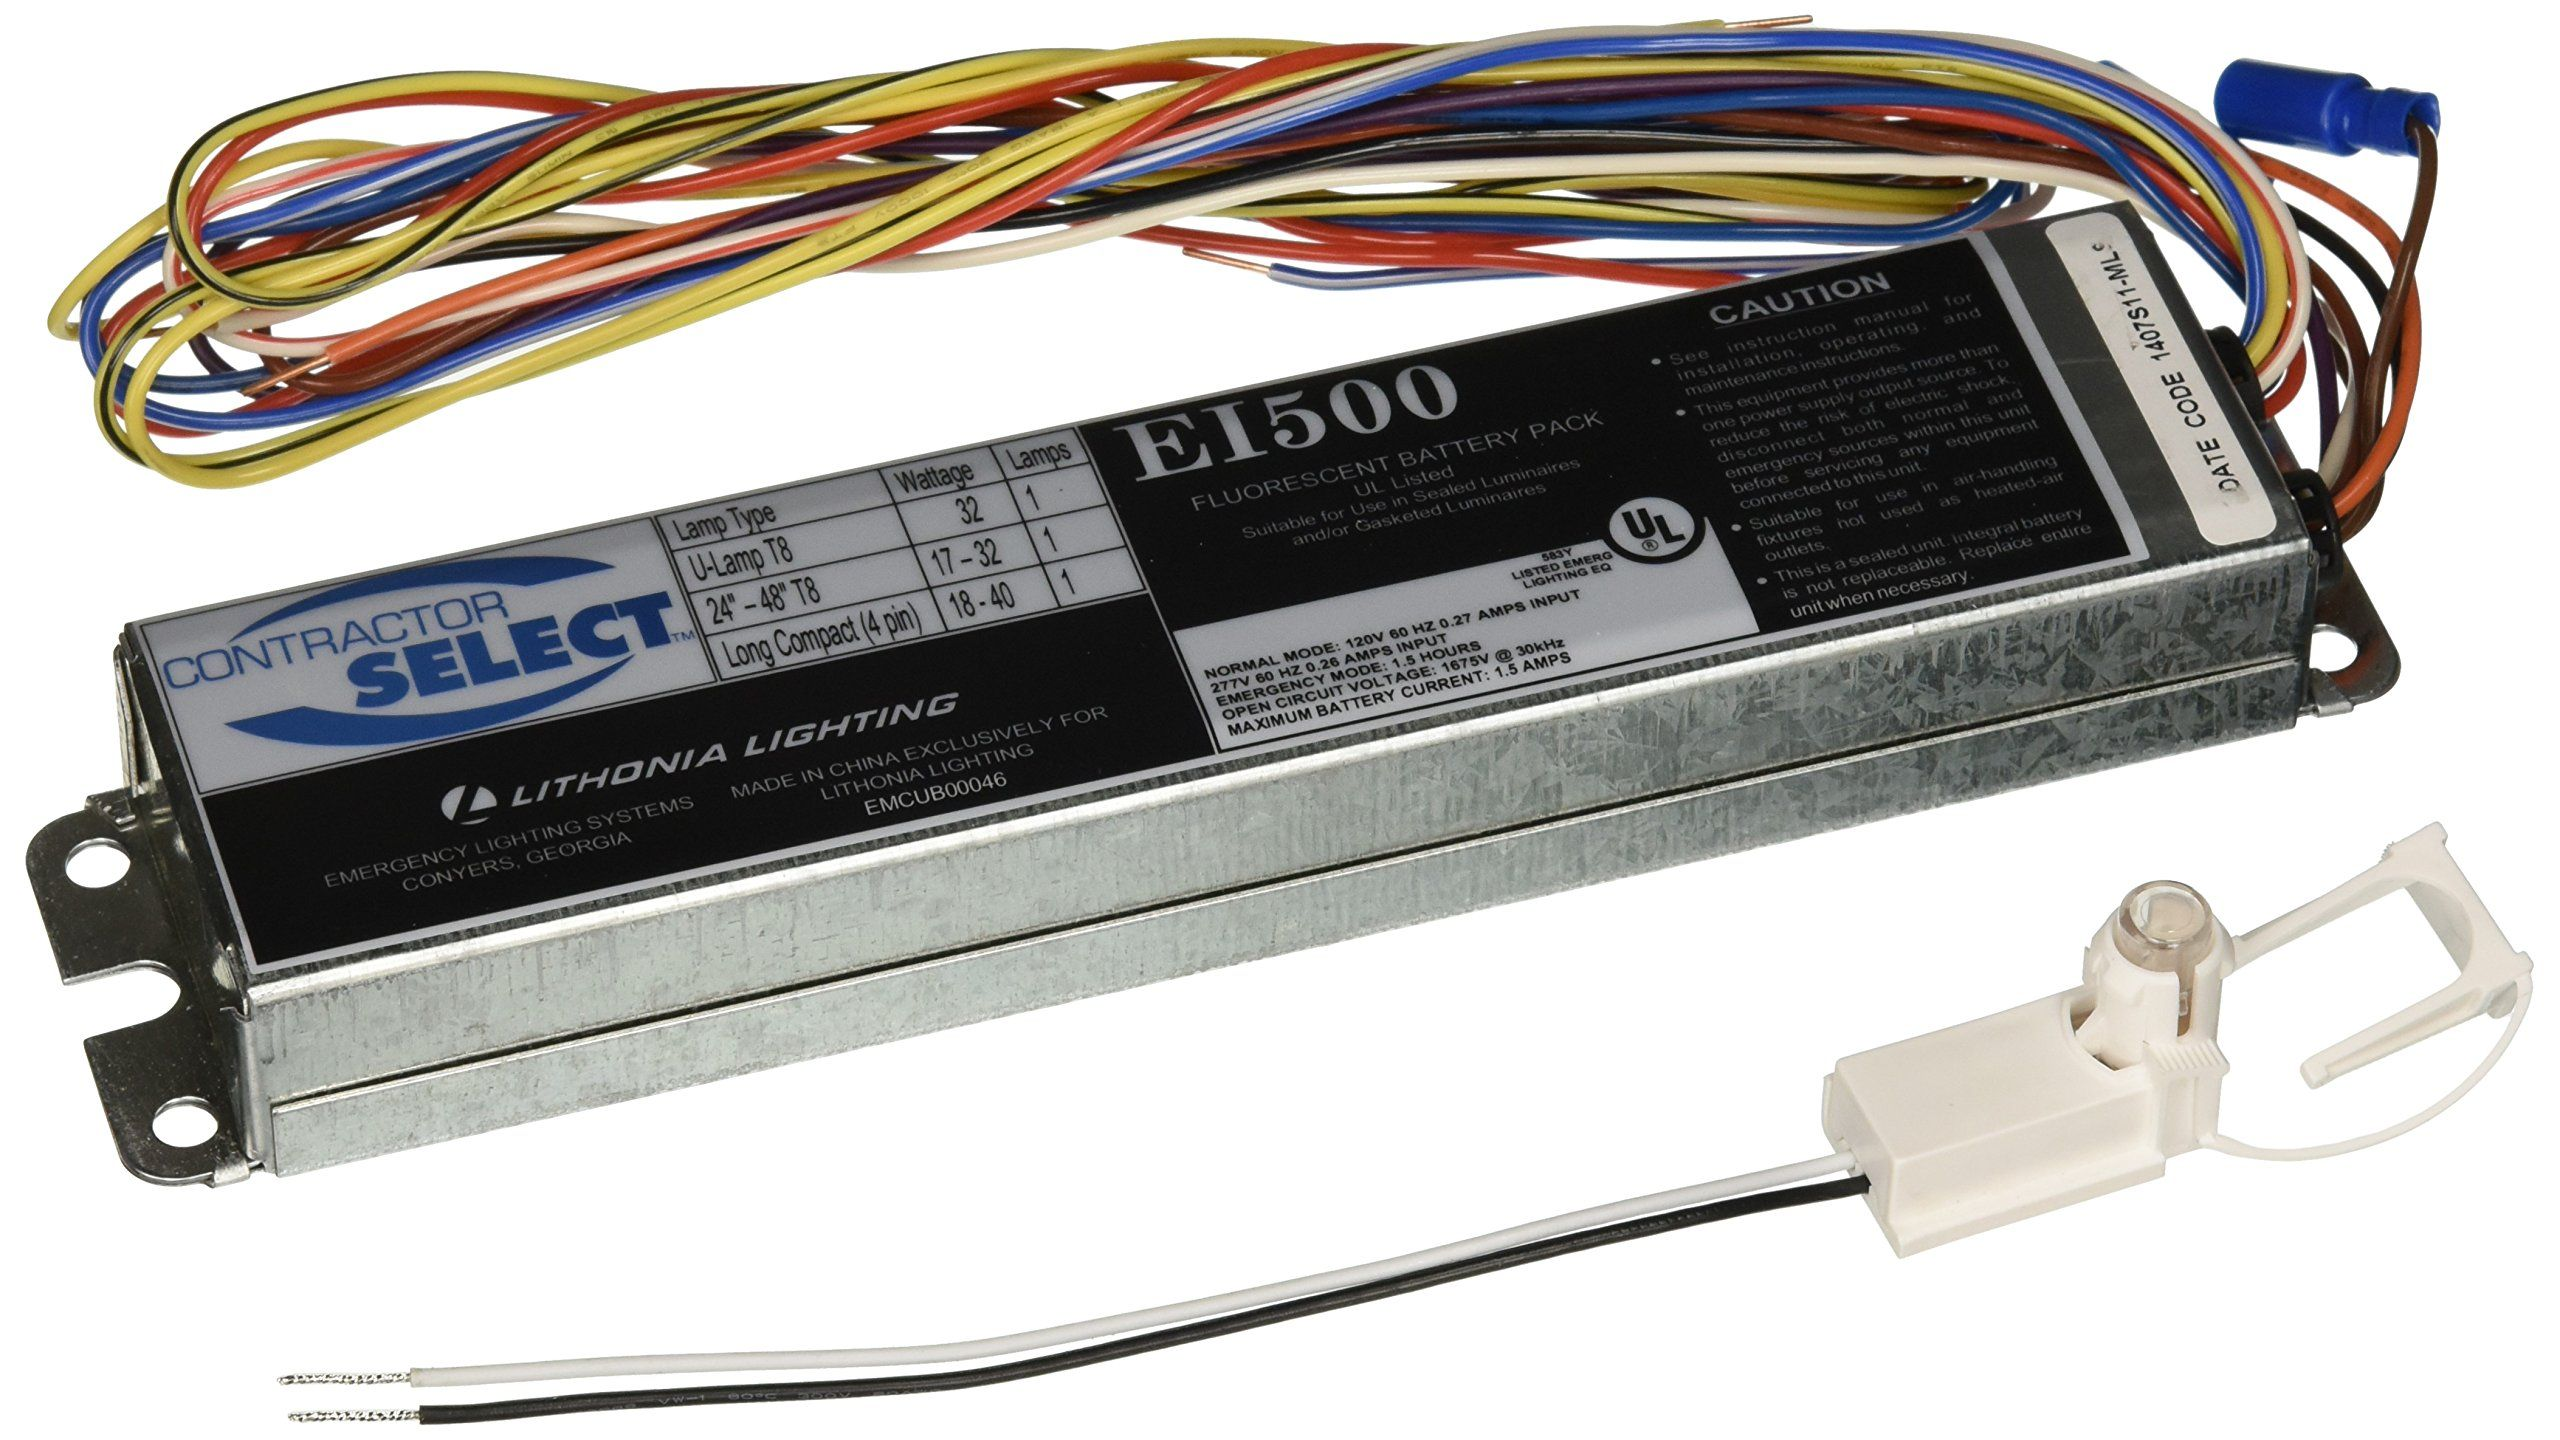 Lithonia Lighting Ei500 M12 Contractor Select 500 Lumen Emergency Ballast For Fluorescent Fixtures Read More At The Image Lithonia Lithonia Lighting Ballast